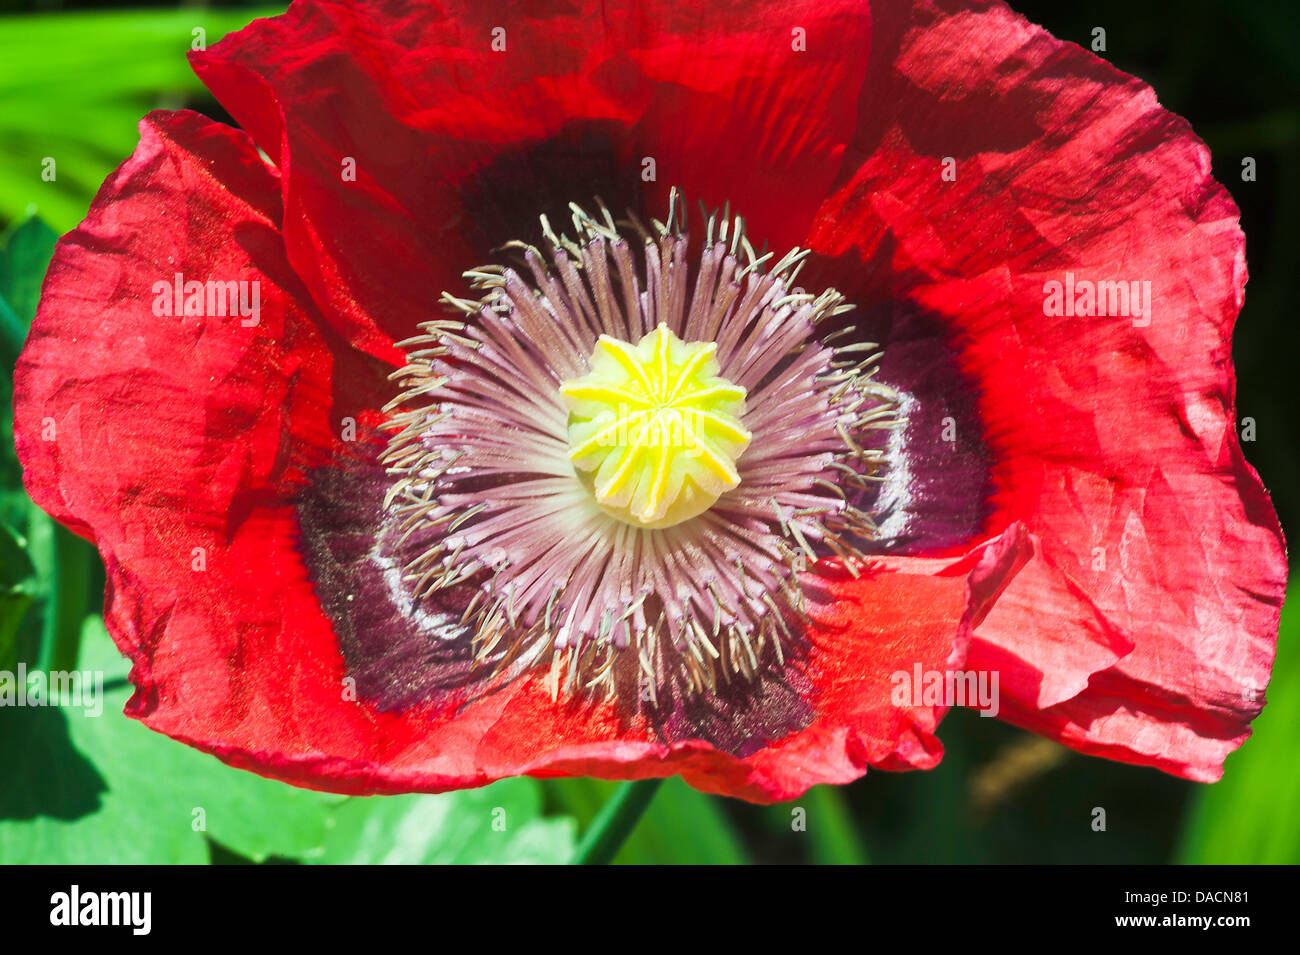 Bright red opium poppy flower in bloom in an alsager cheshire garden bright red opium poppy flower in bloom in an alsager cheshire garden england united kingdom uk mightylinksfo